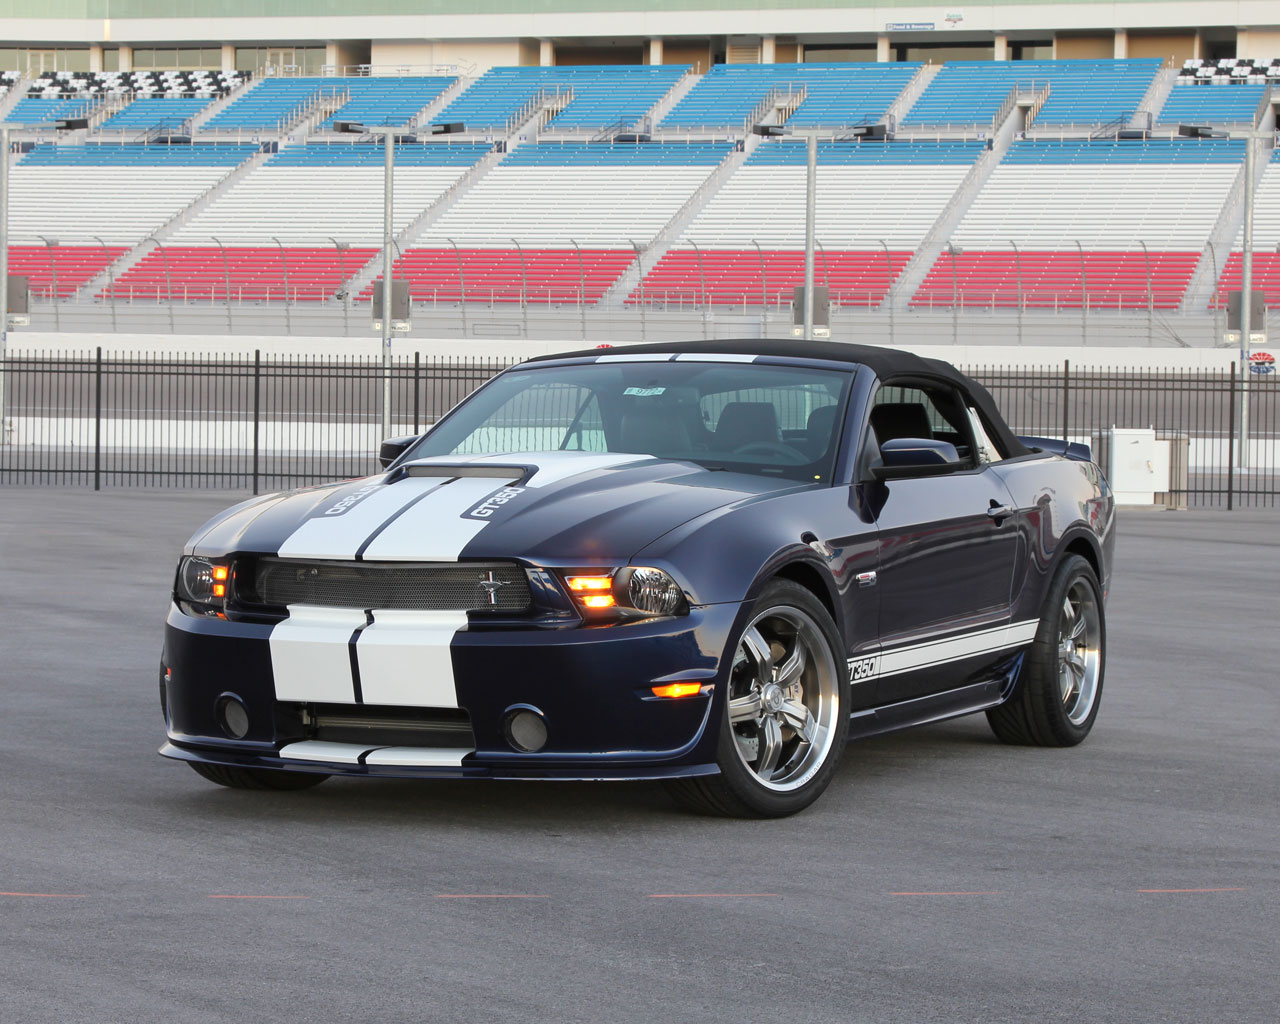 2012 Ford Mustang Shelby GT350 | Top Speed